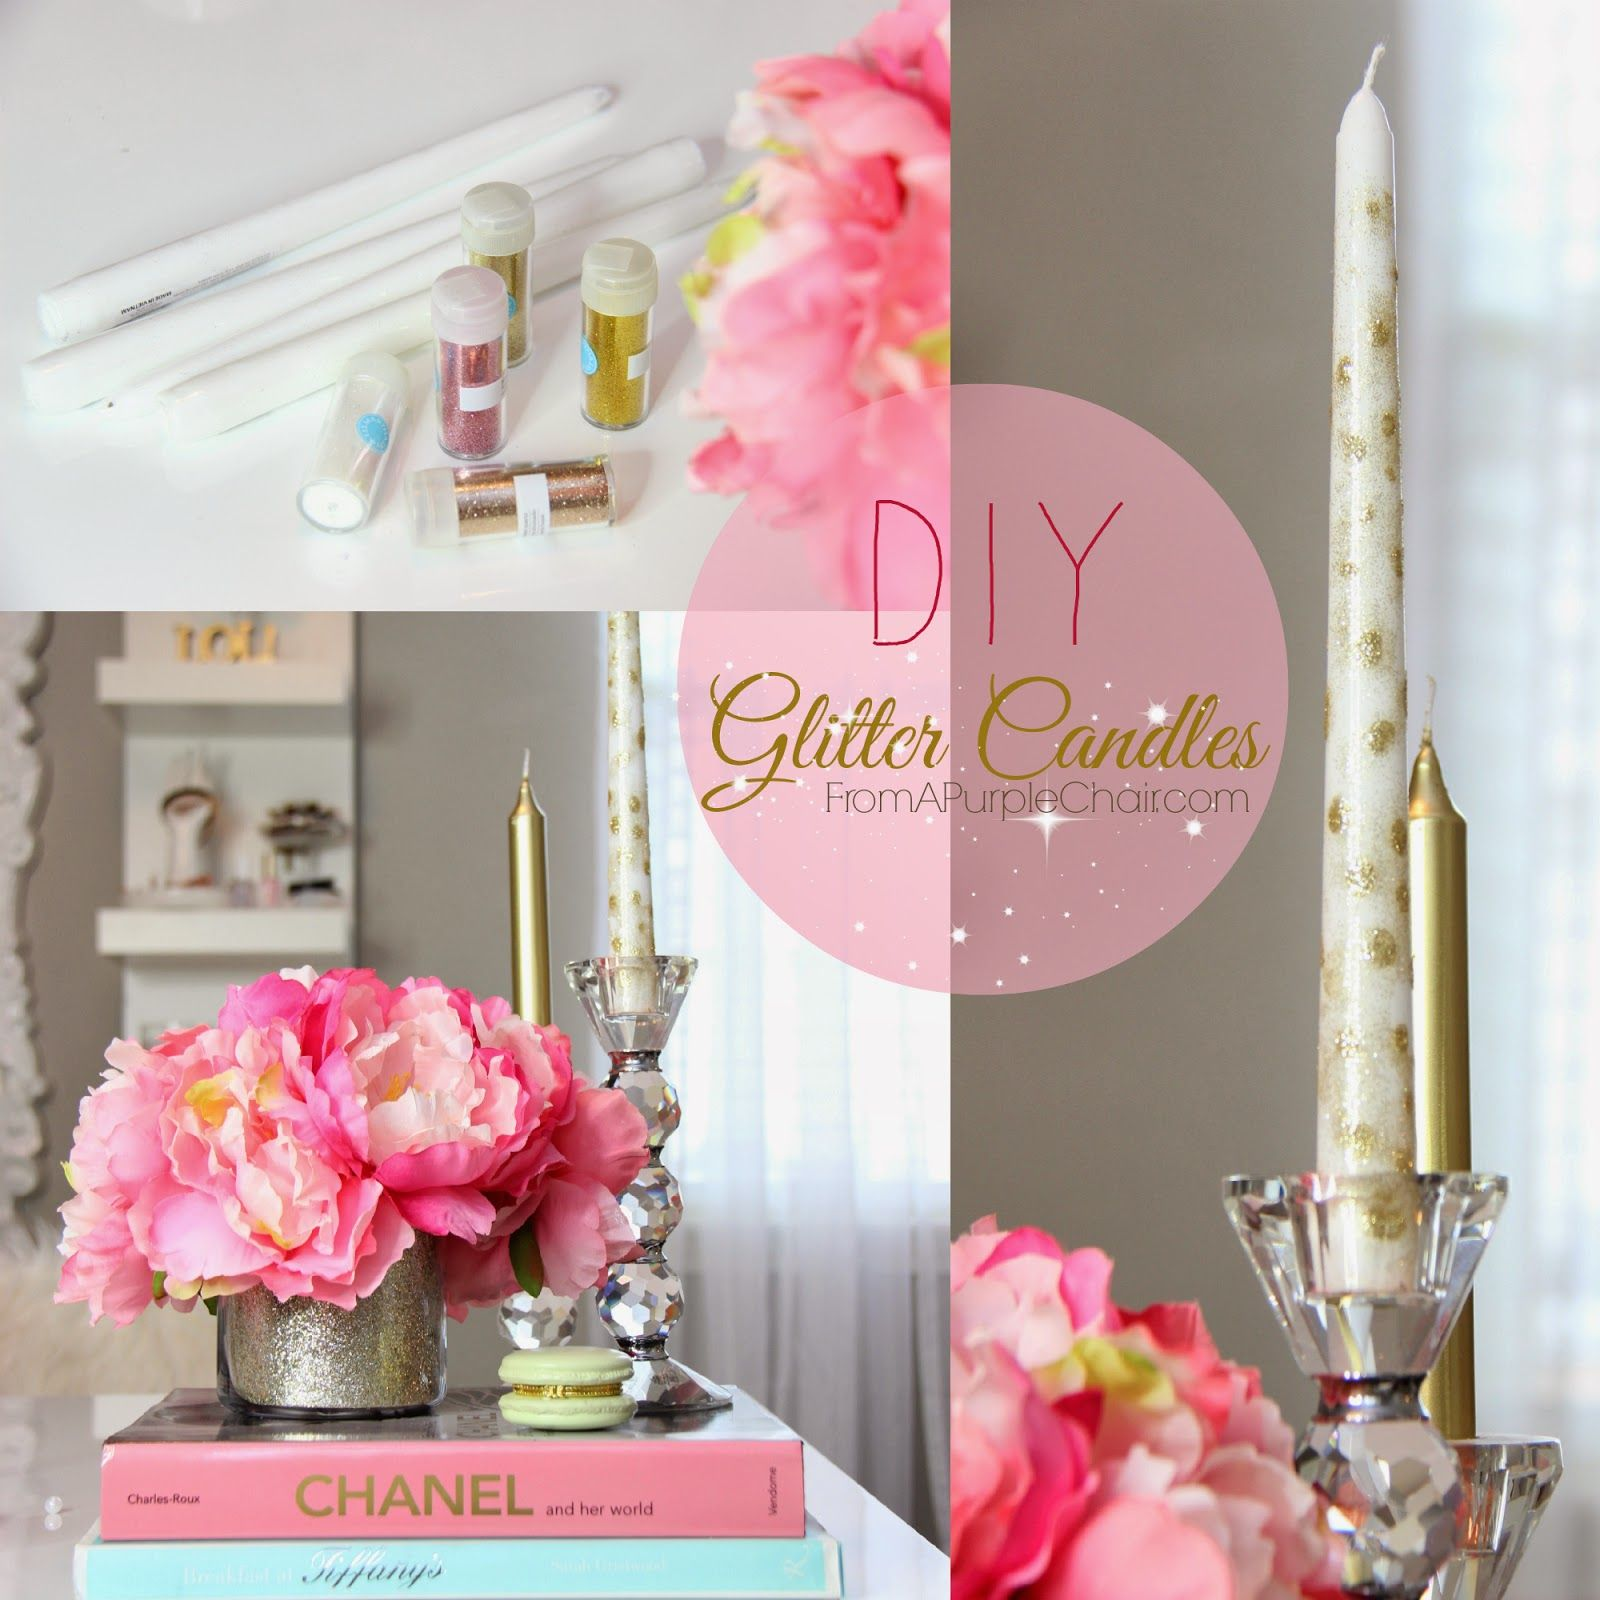 Girly Diy Bedroom: Glamorous Decorations For Girly Office, Makeup Room